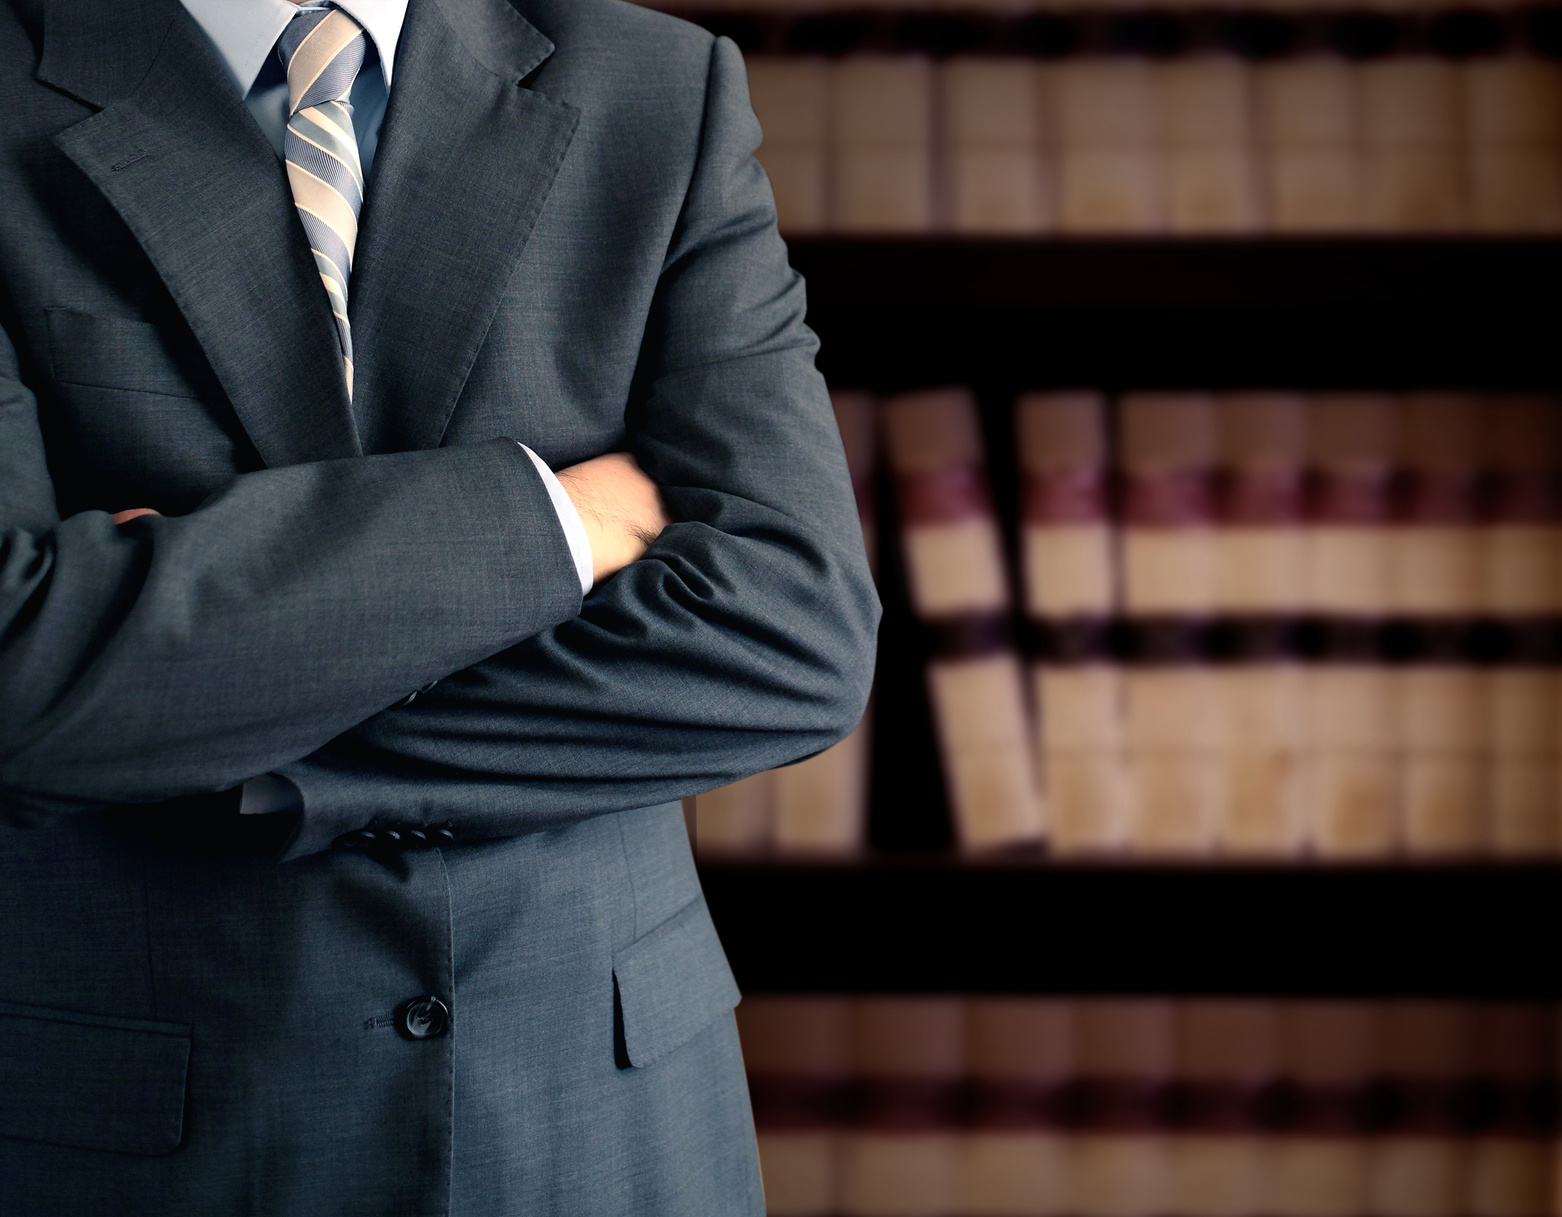 How We Partner With Attorneys To Help Their Clients